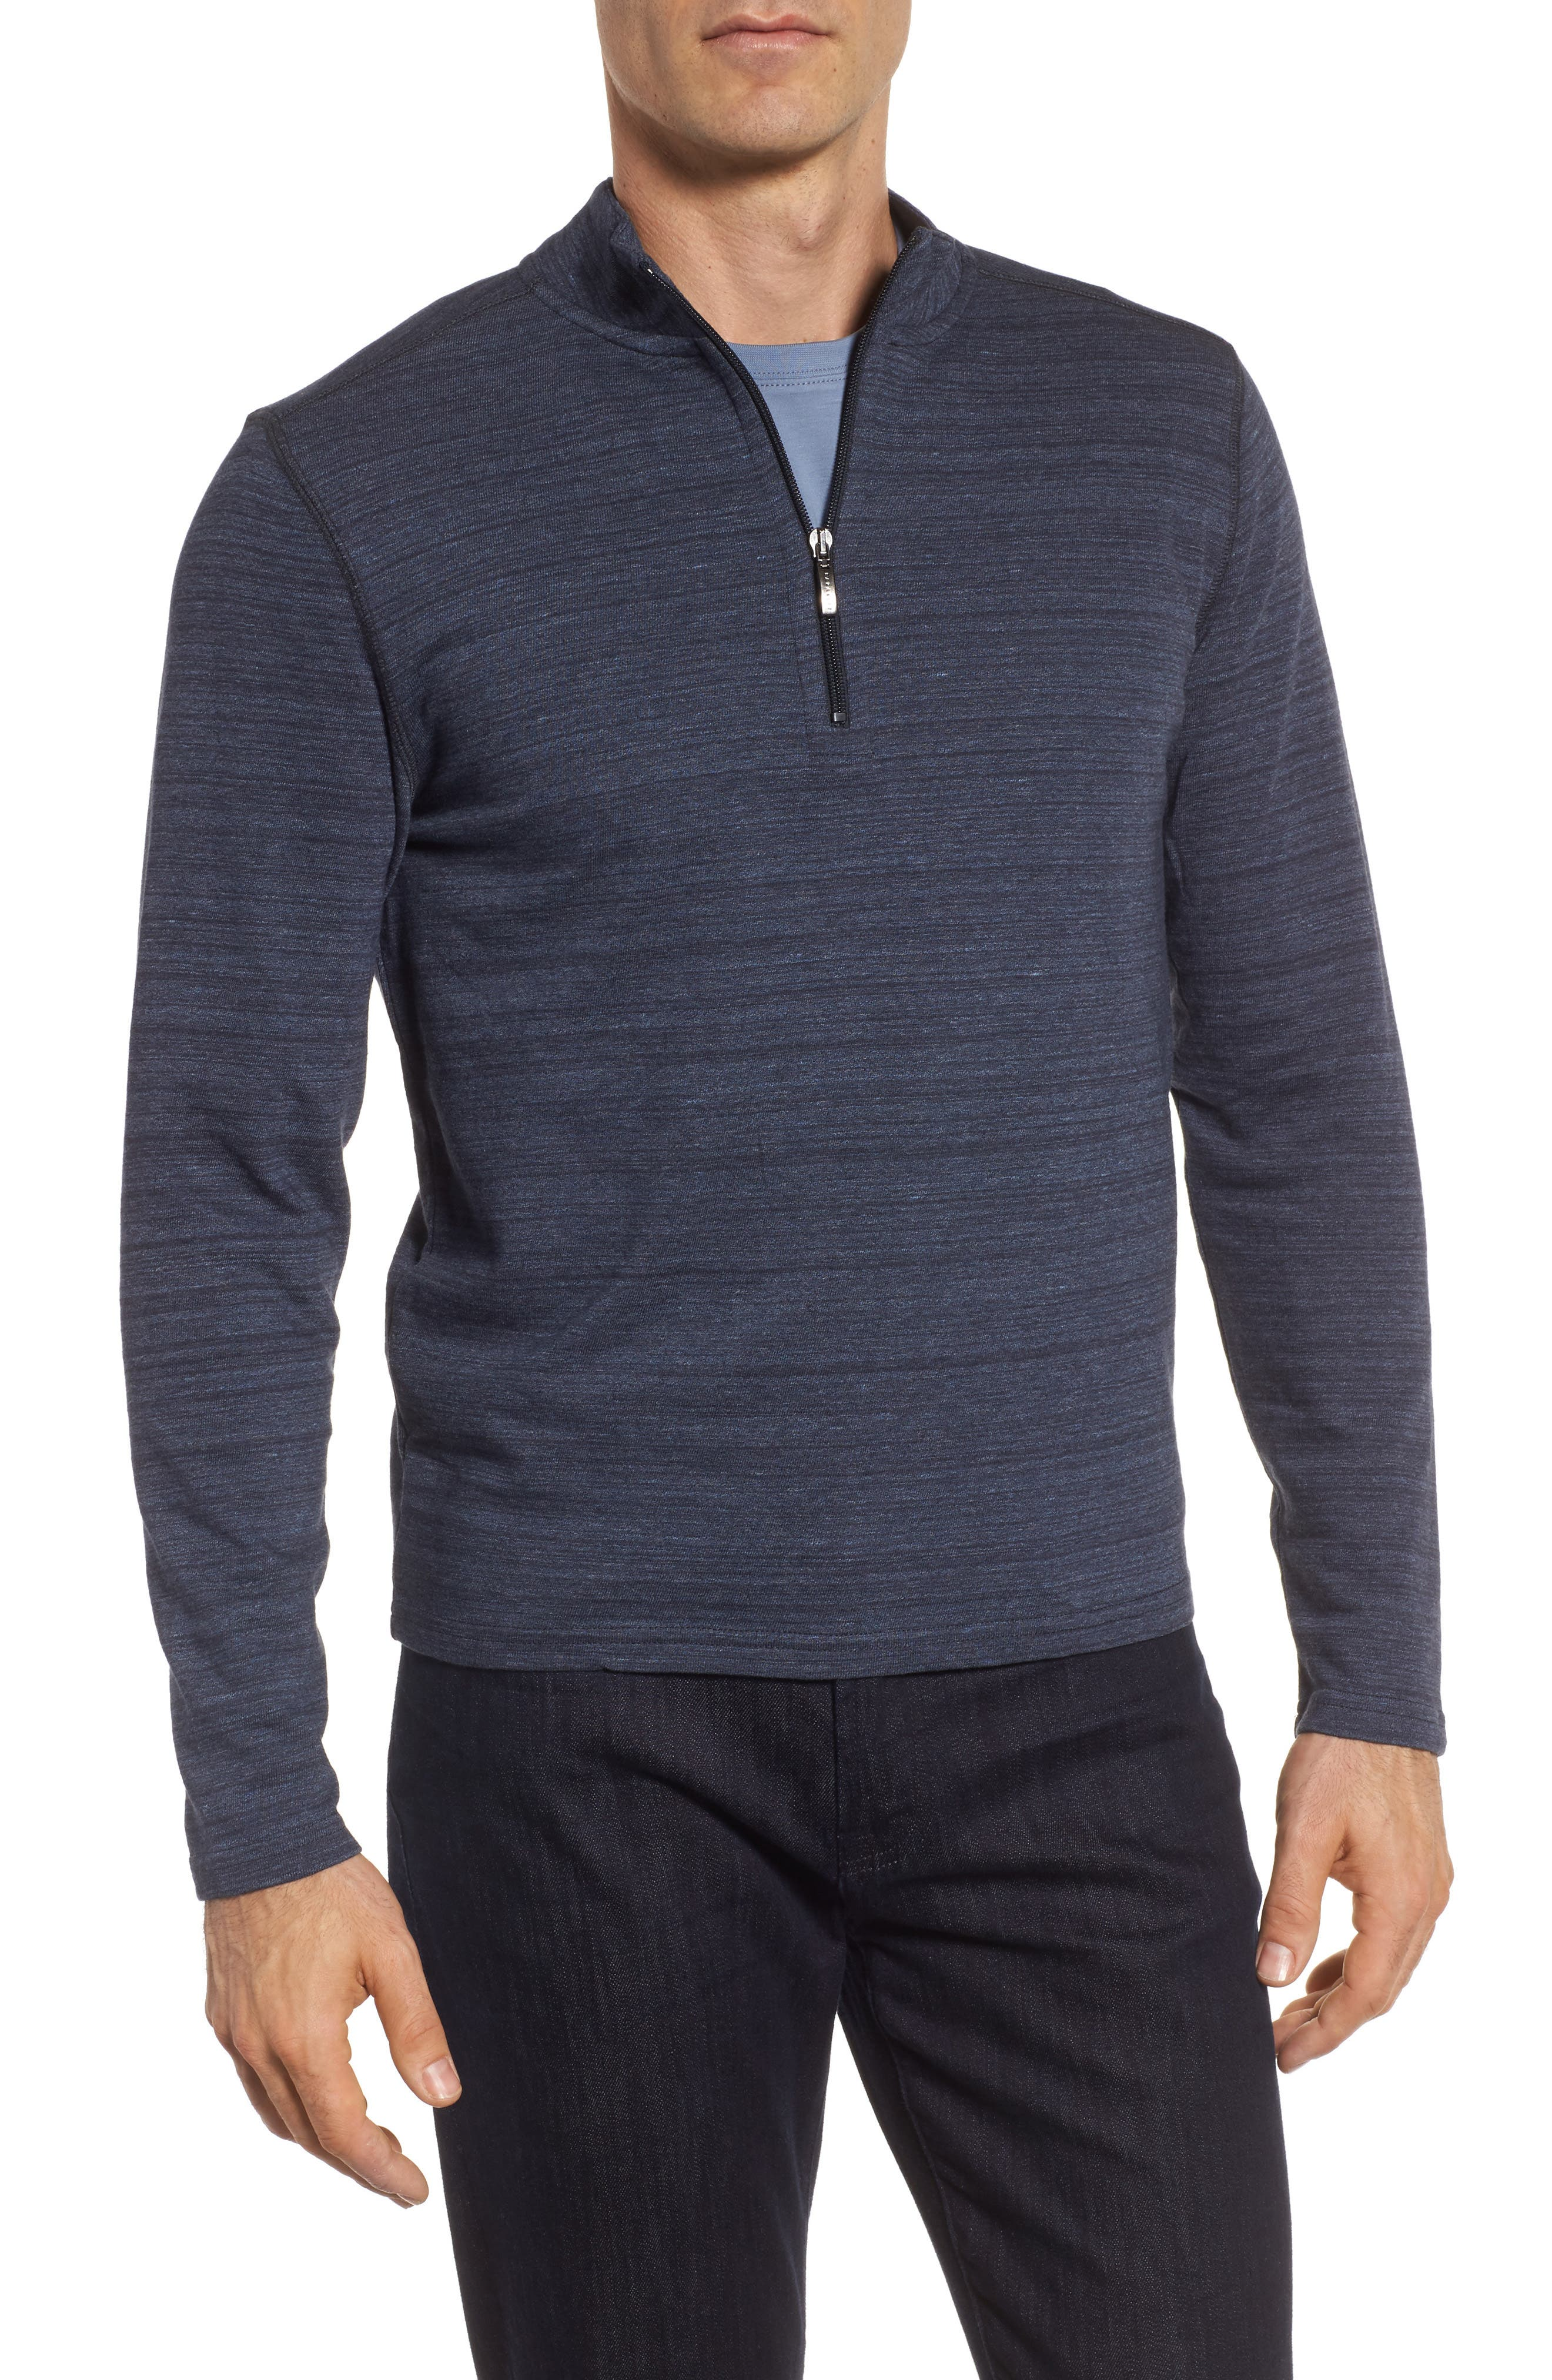 Marcel Quarter Zip Pullover,                         Main,                         color, 525